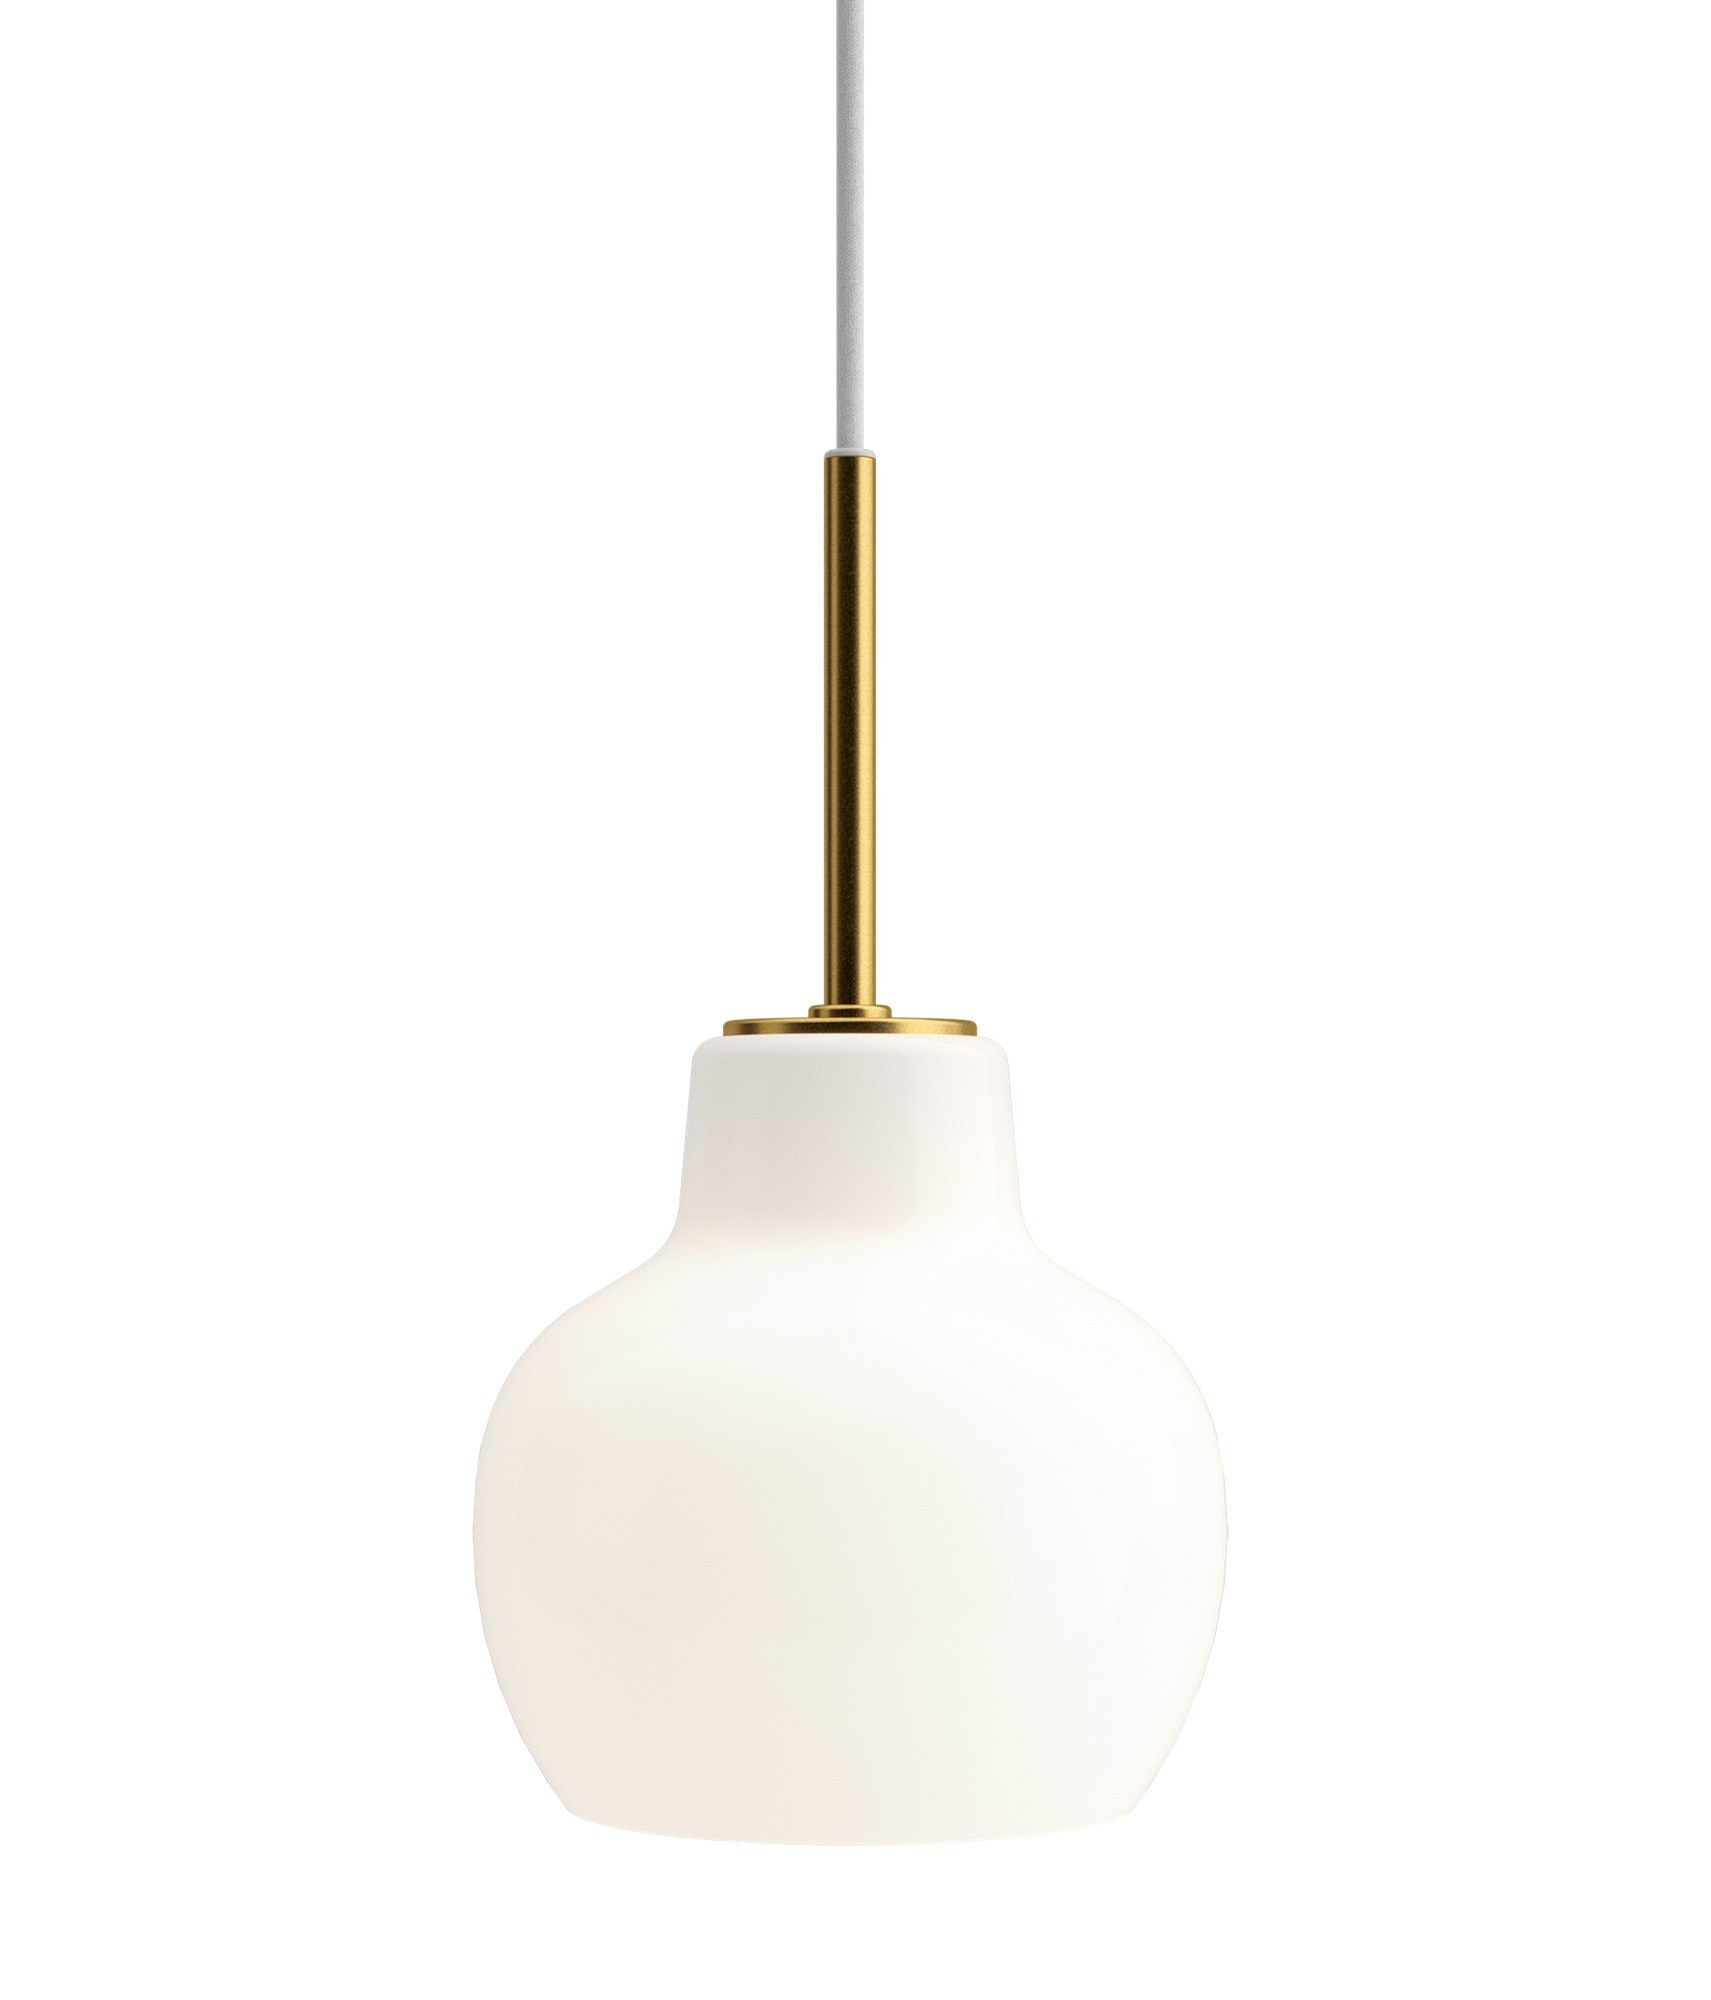 Louis Poulsen VL Ring Crown 1 Pendant Lamp